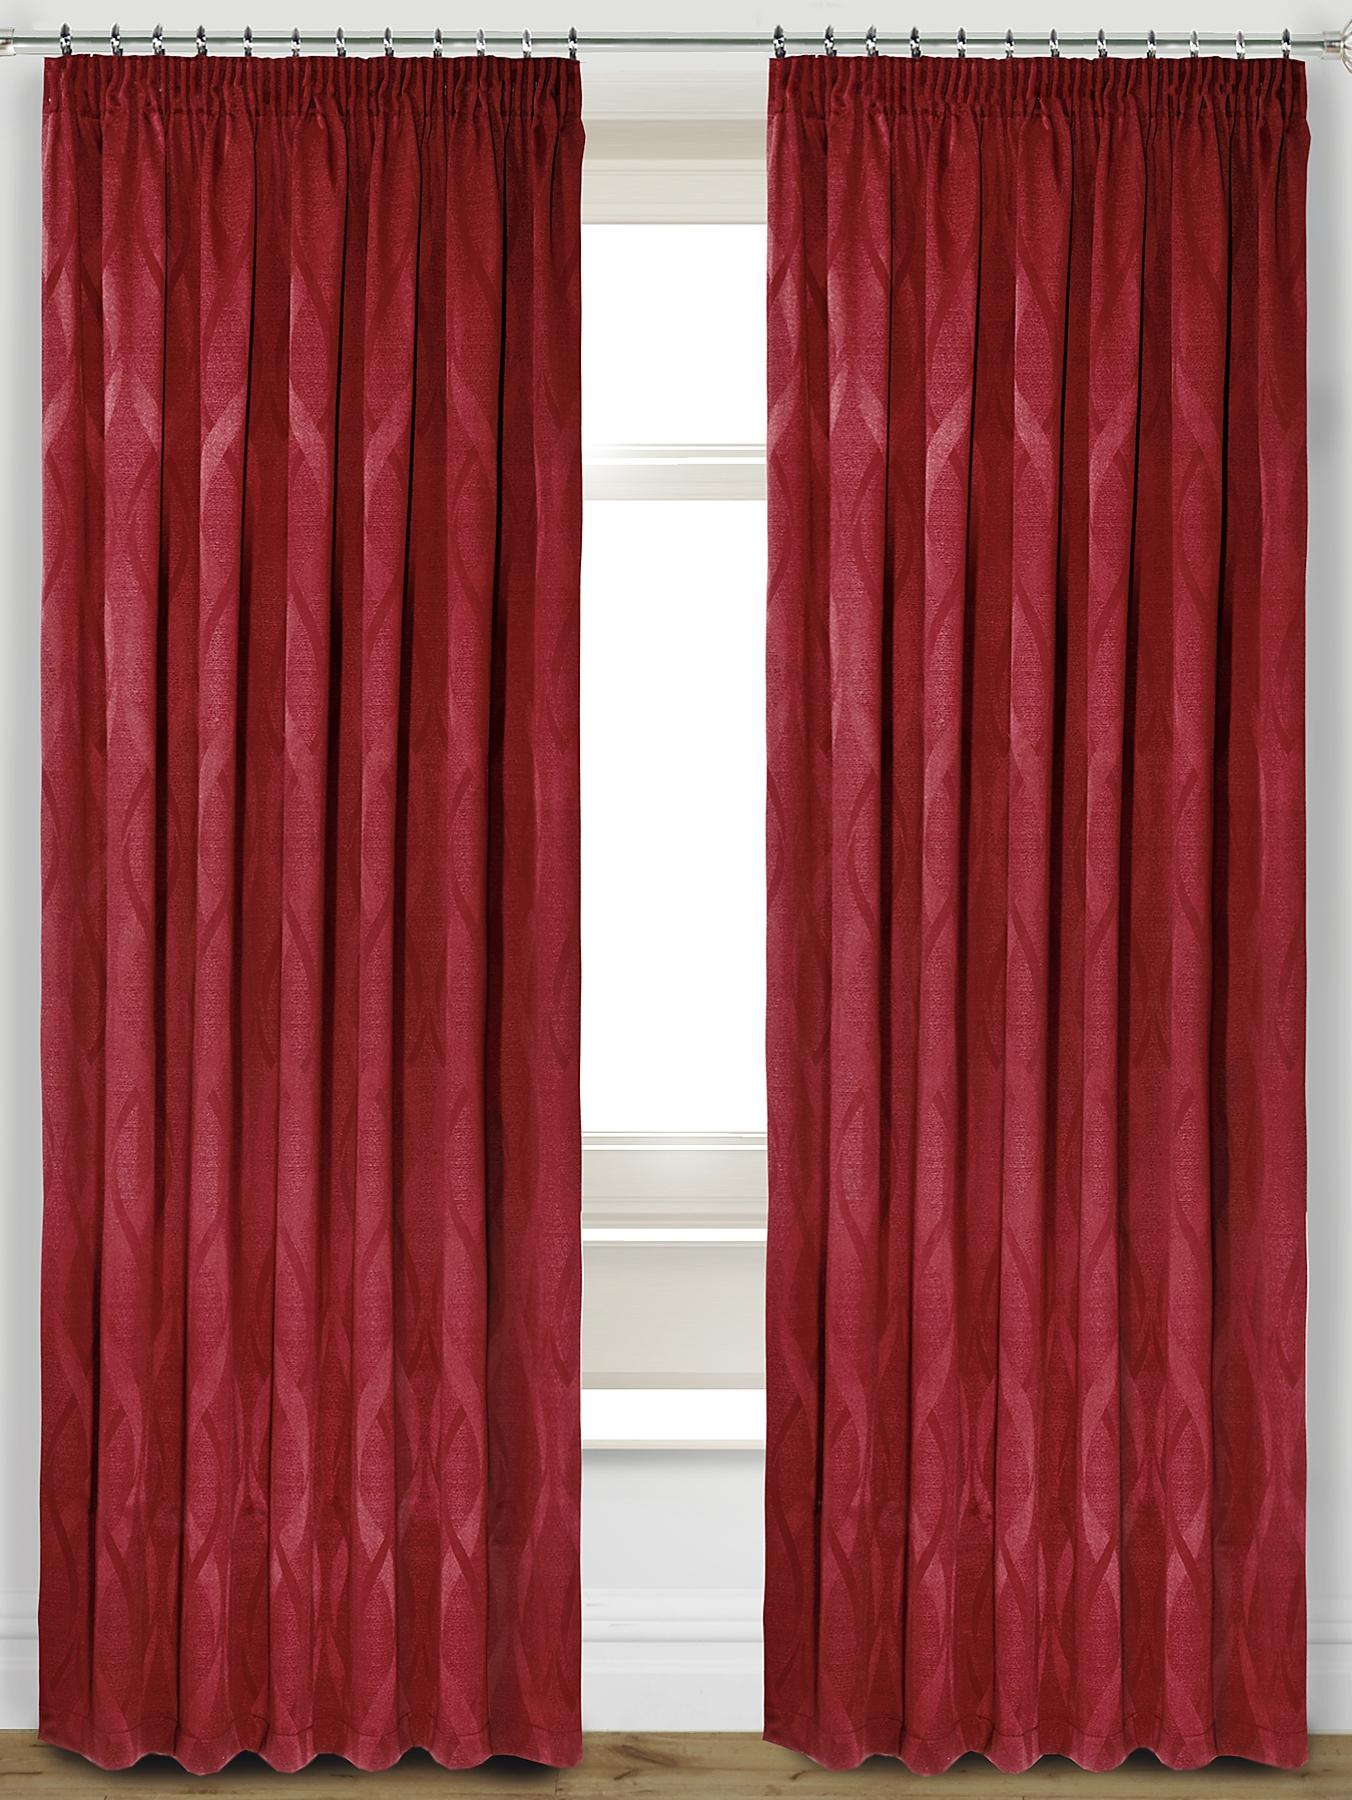 Orion Jacquard Thermal Pencil Pleat Curtains, Chocolate.